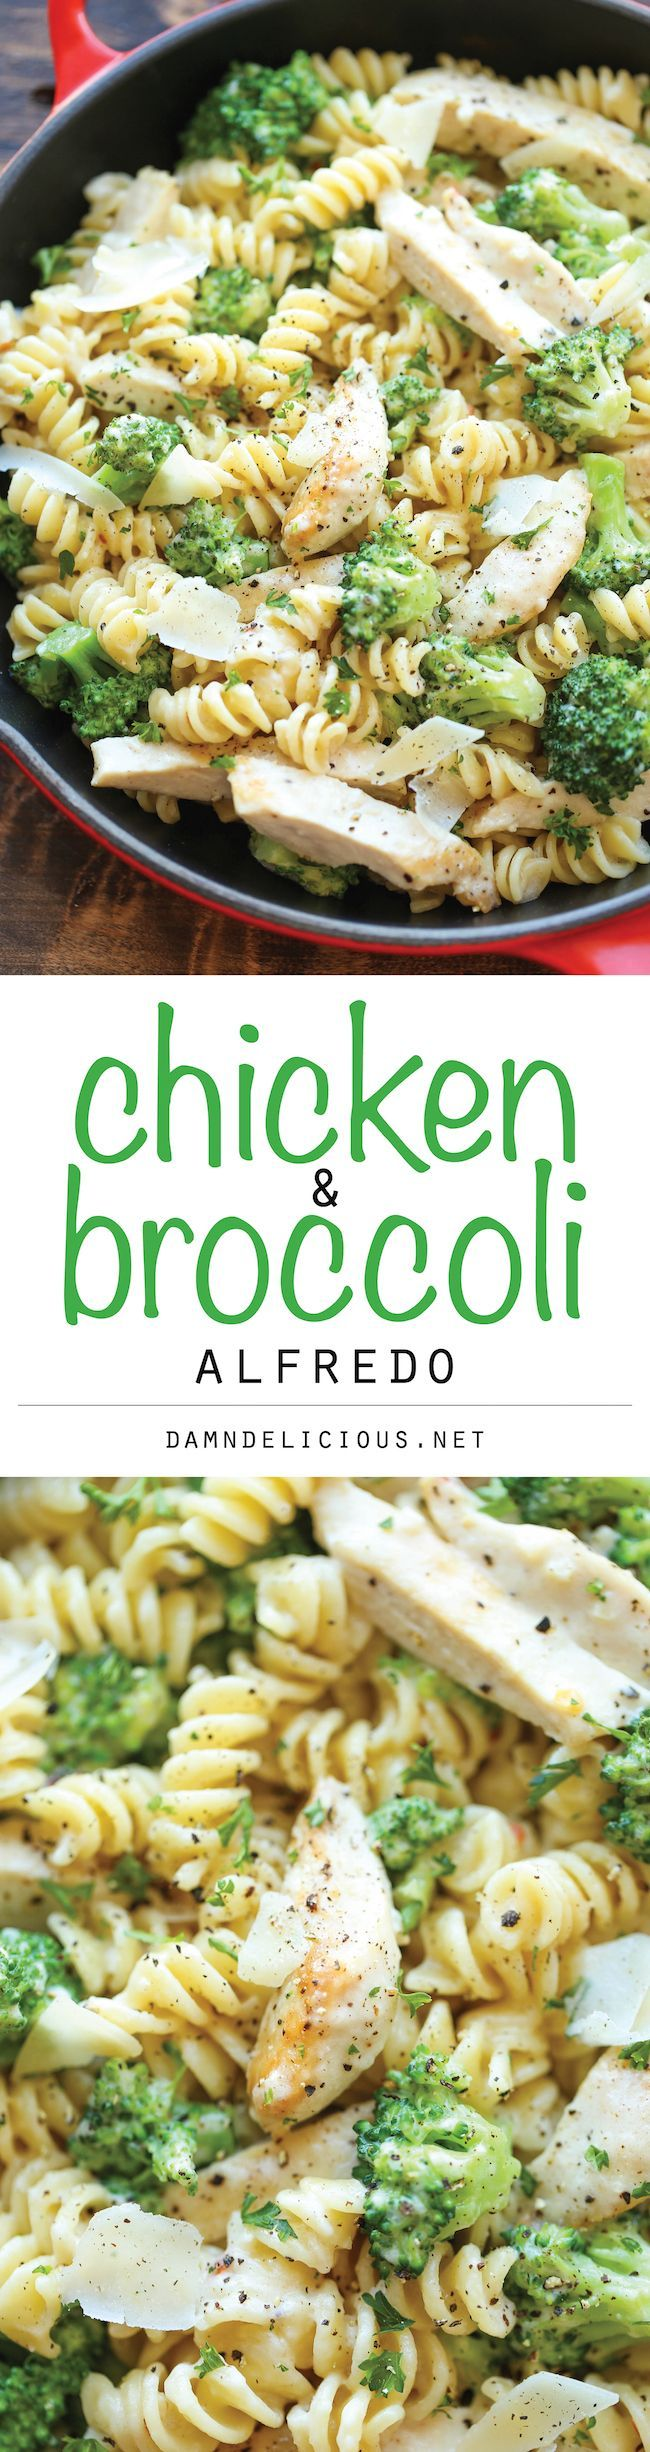 Chicken and Broccoli Afredo Recipe